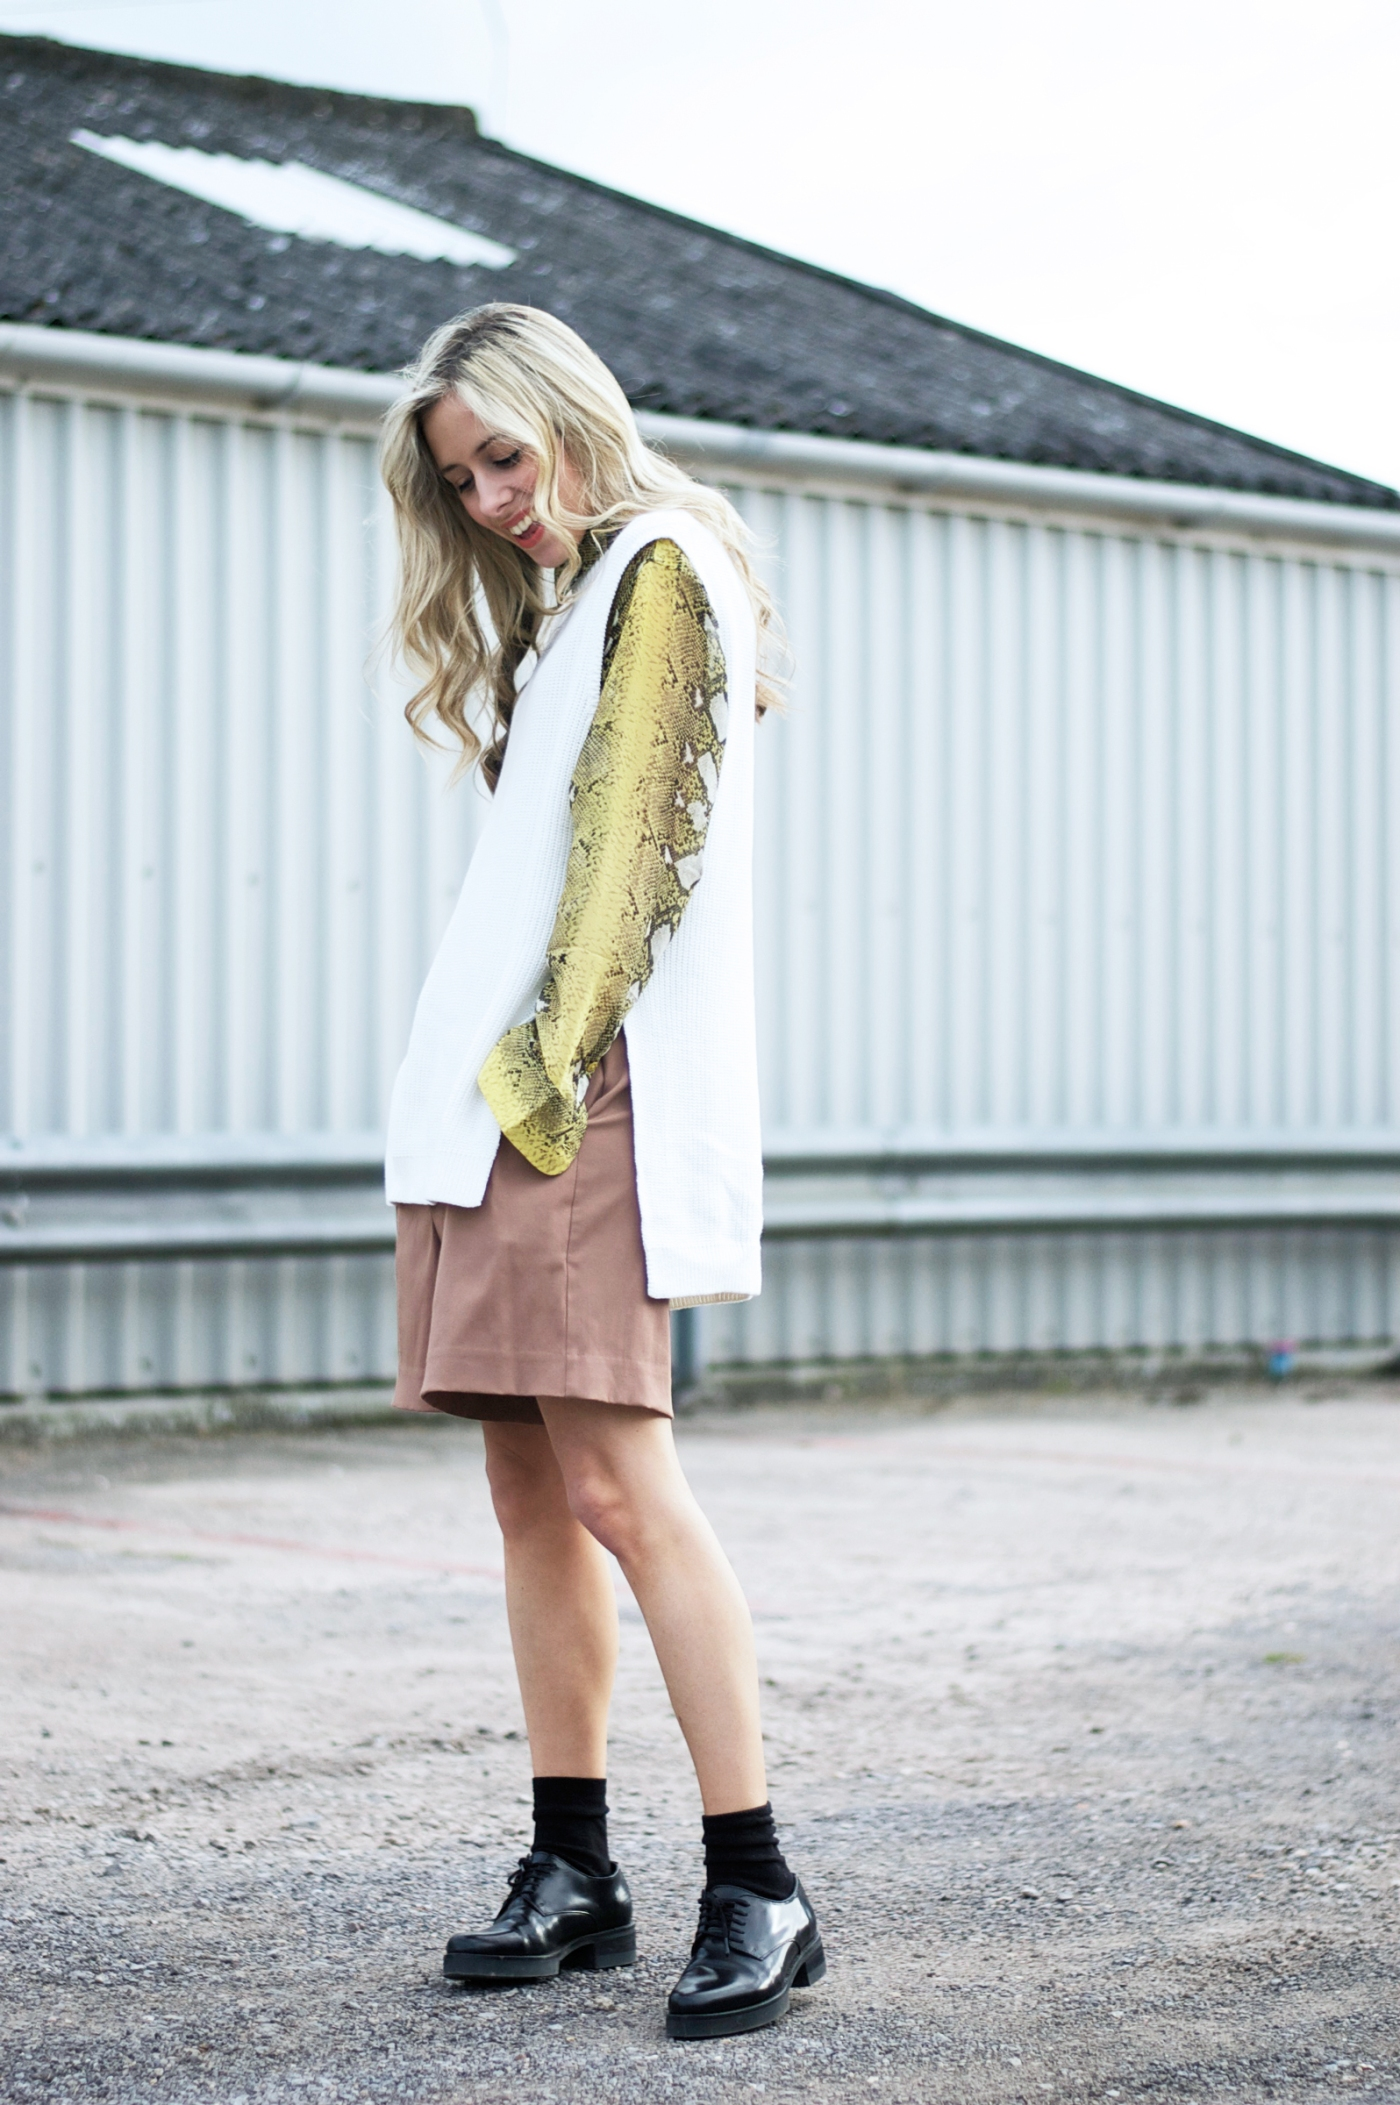 Adding some colourful snake print to my outfit.